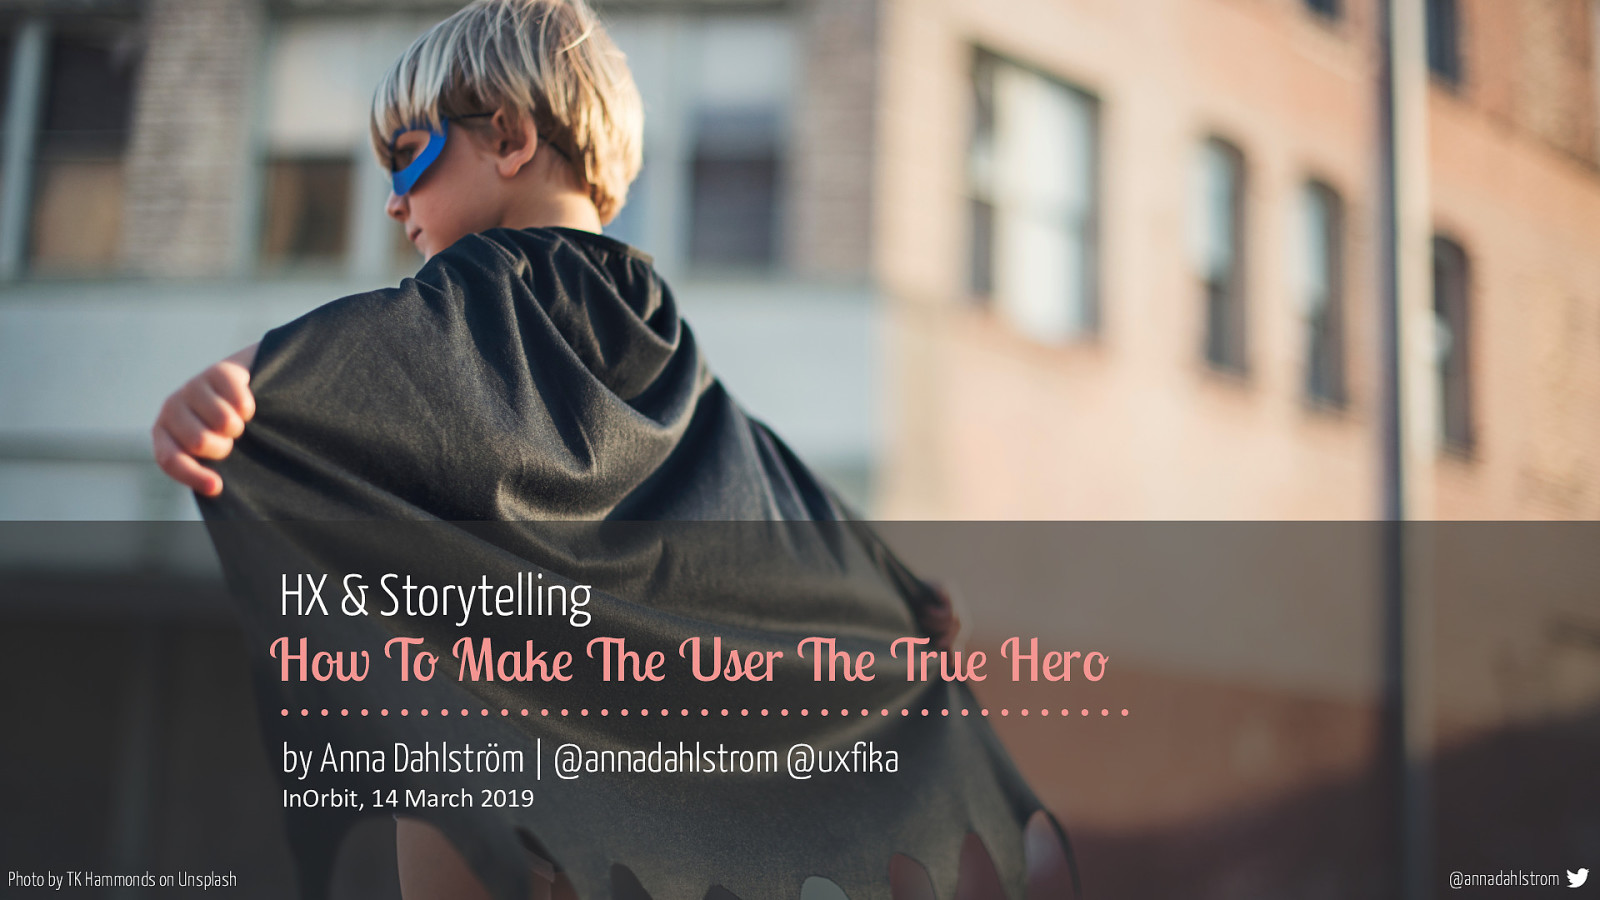 HX & Storytelling: How To Make The User The True Hero